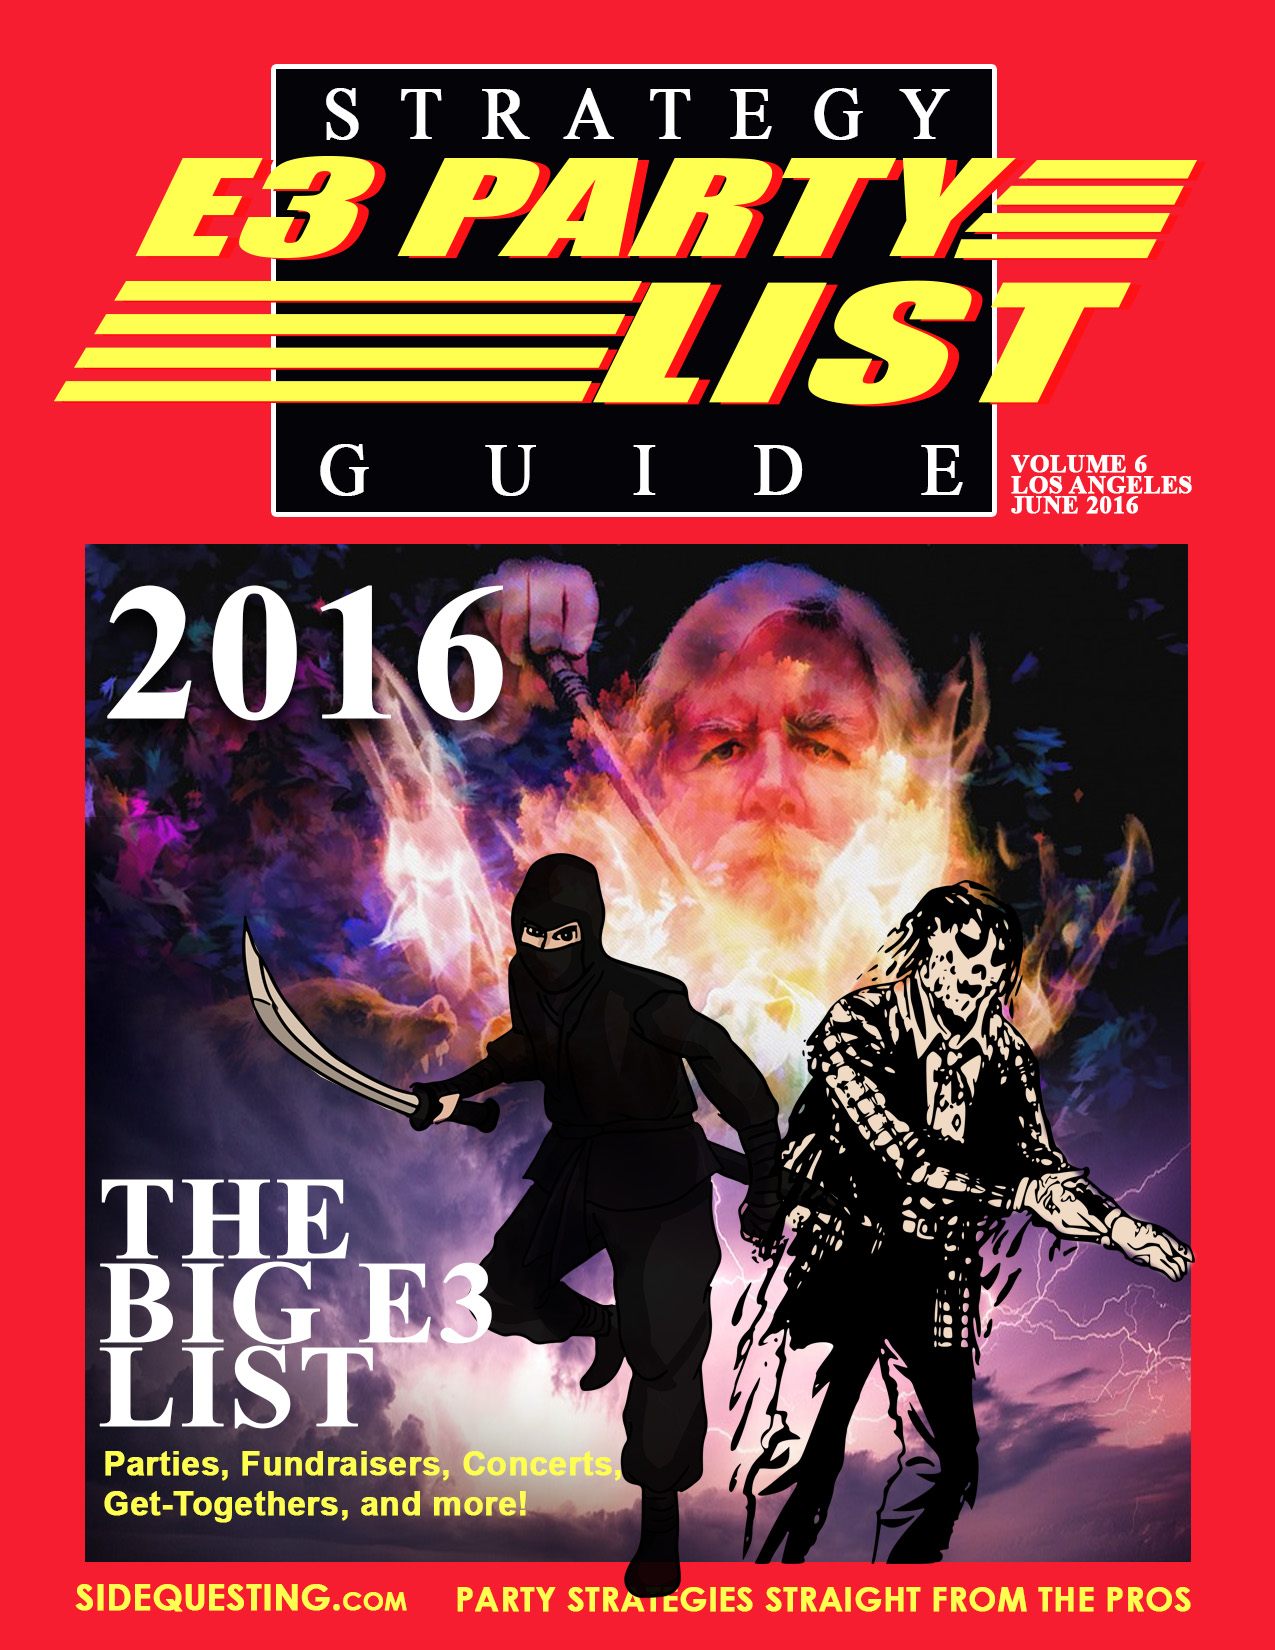 The BIG E3 2016 Party List: Parties, Events, Fundraisers and more!